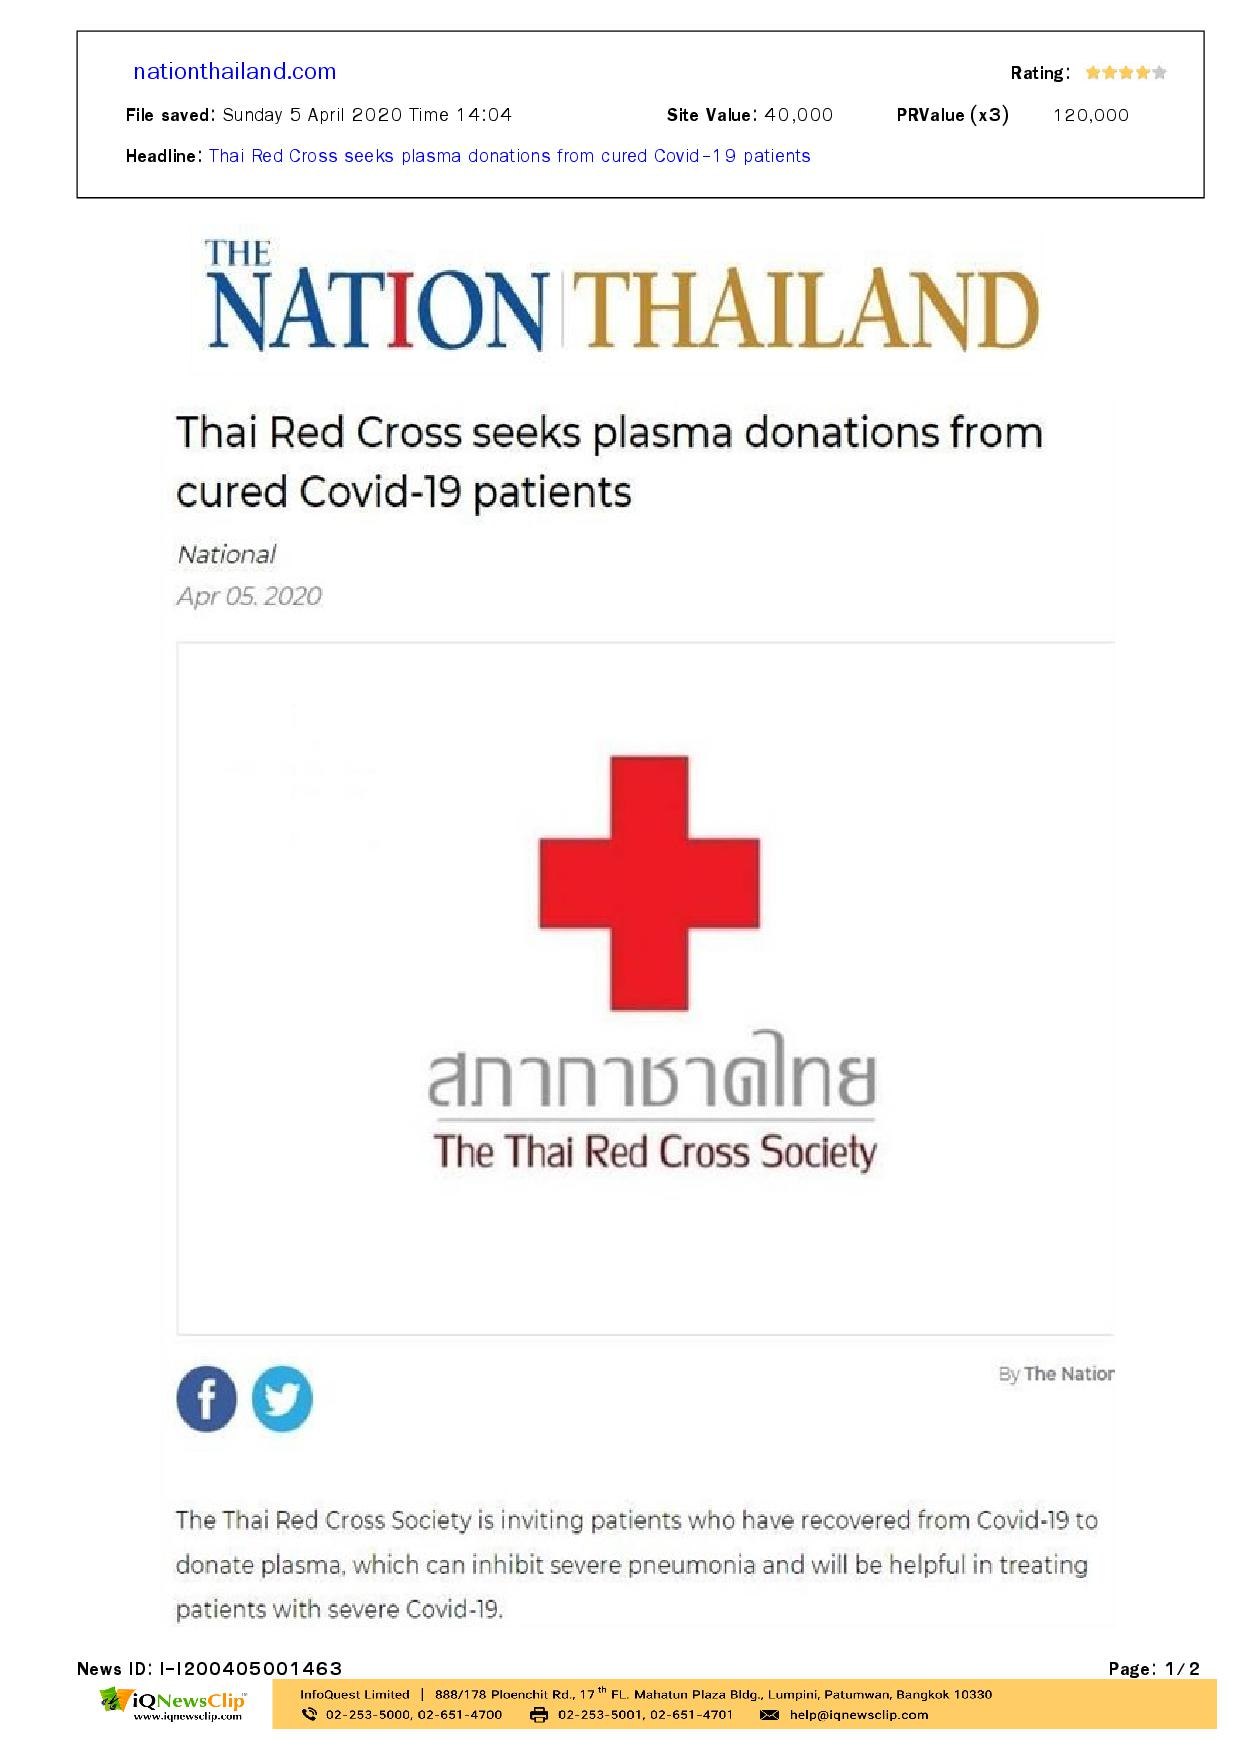 Thai Red Cross seeks plasma donations from cured Covid-19 patients